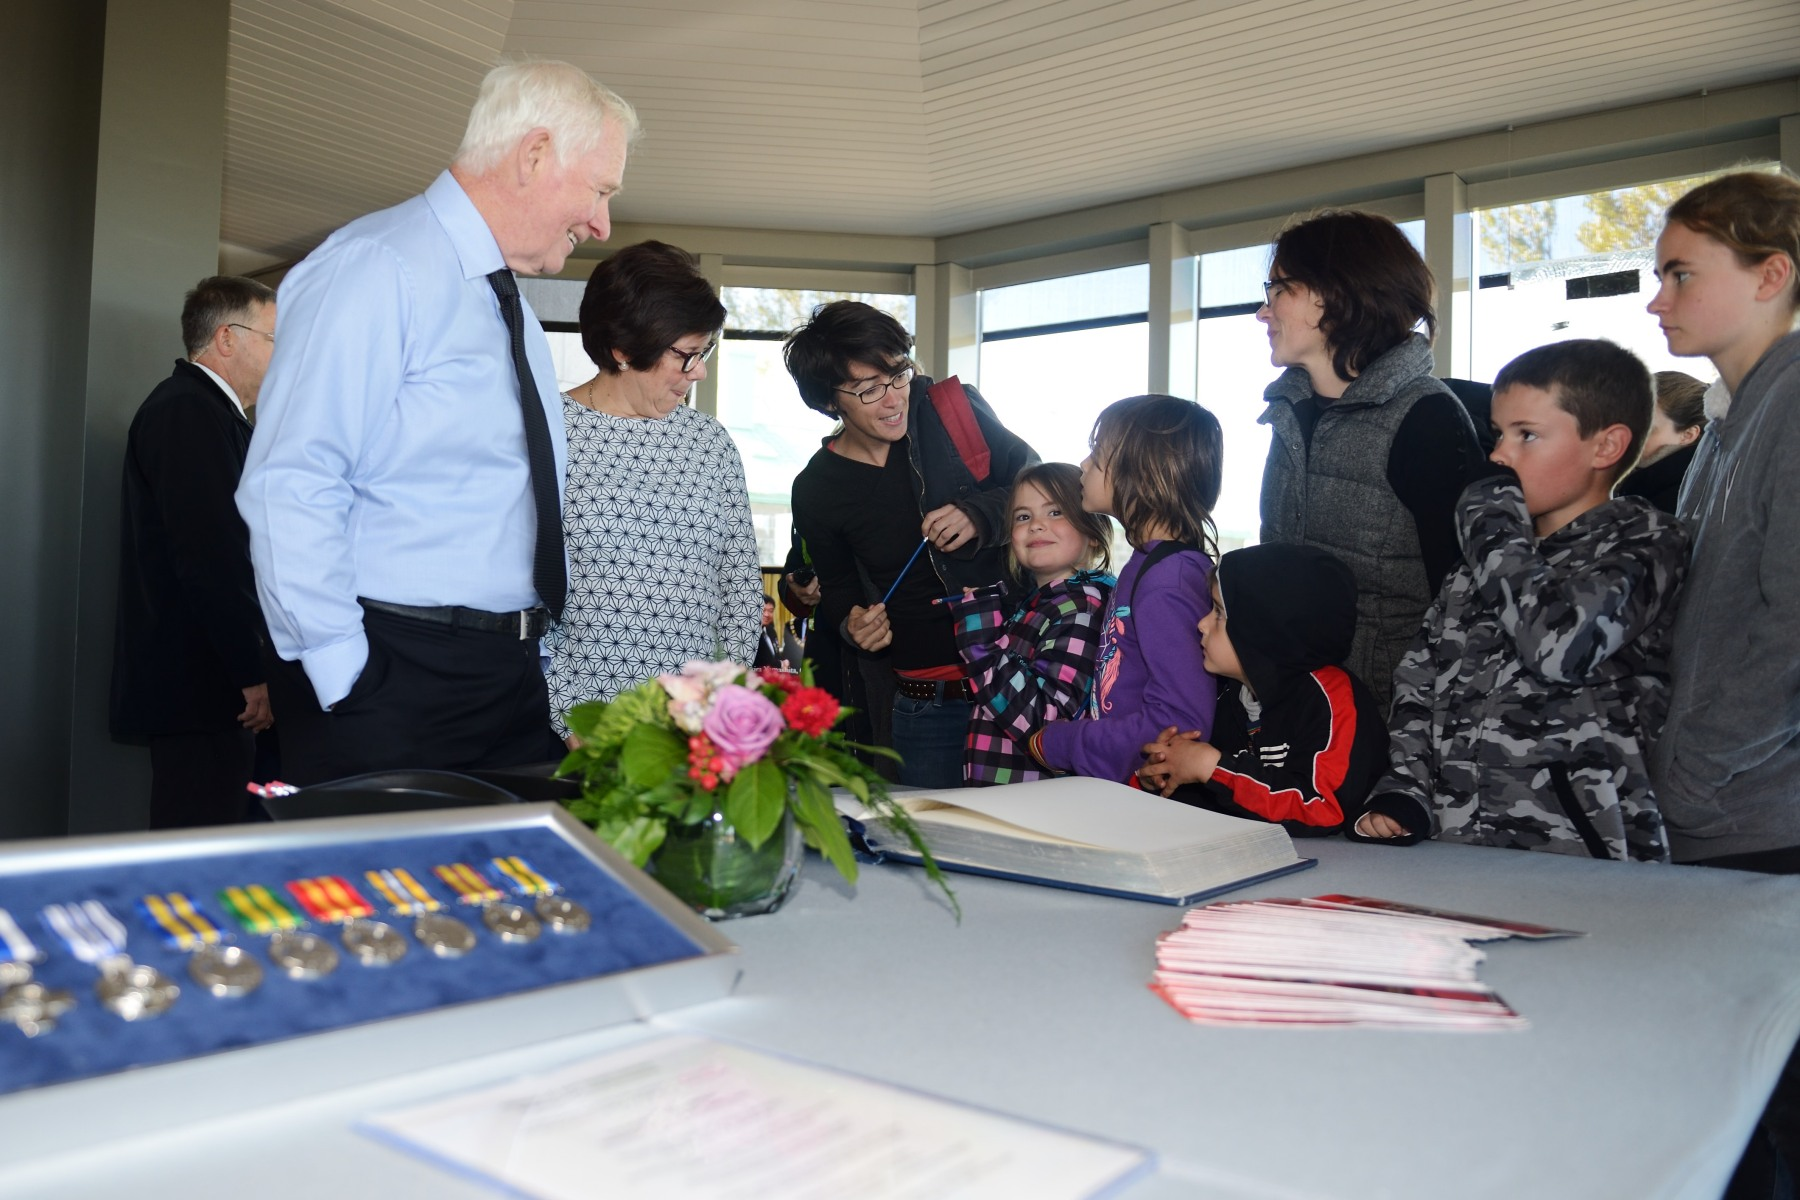 Representatives from the Chancellery of Honours spoke with visitors about the Canadian Honours System.